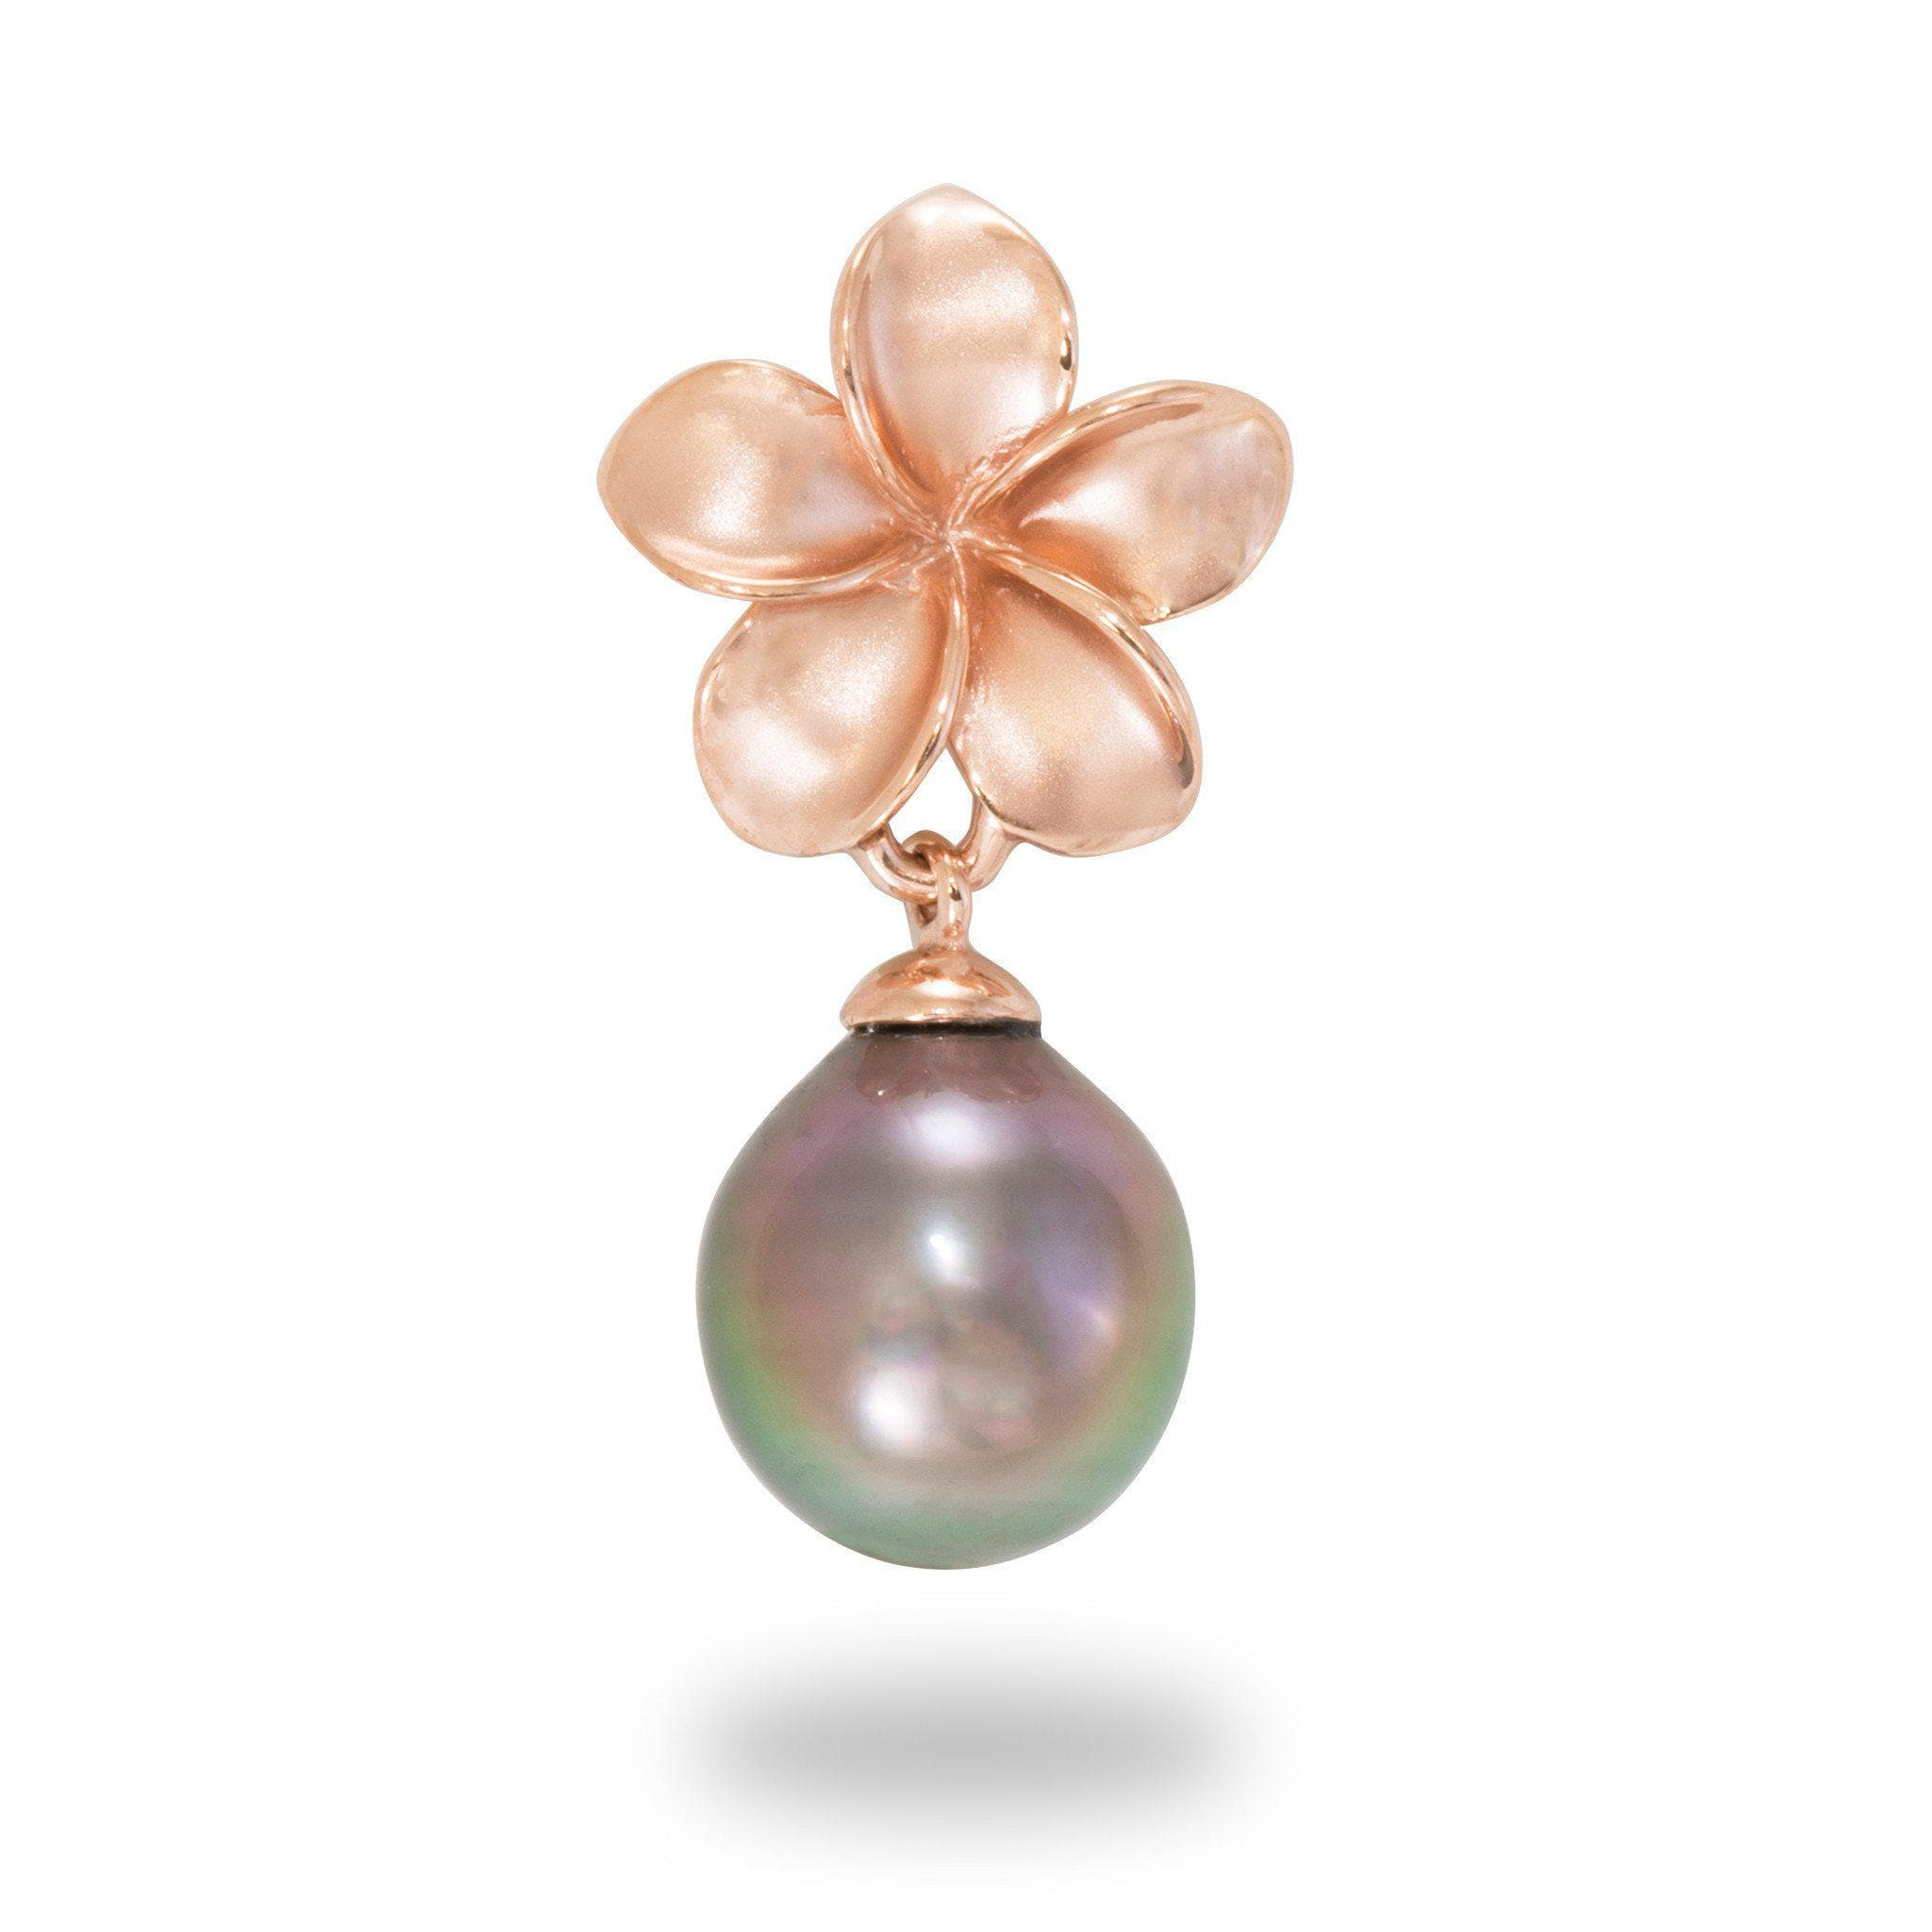 designs and life at pearl for real earrings phab detailmain main single multiple women articles styles